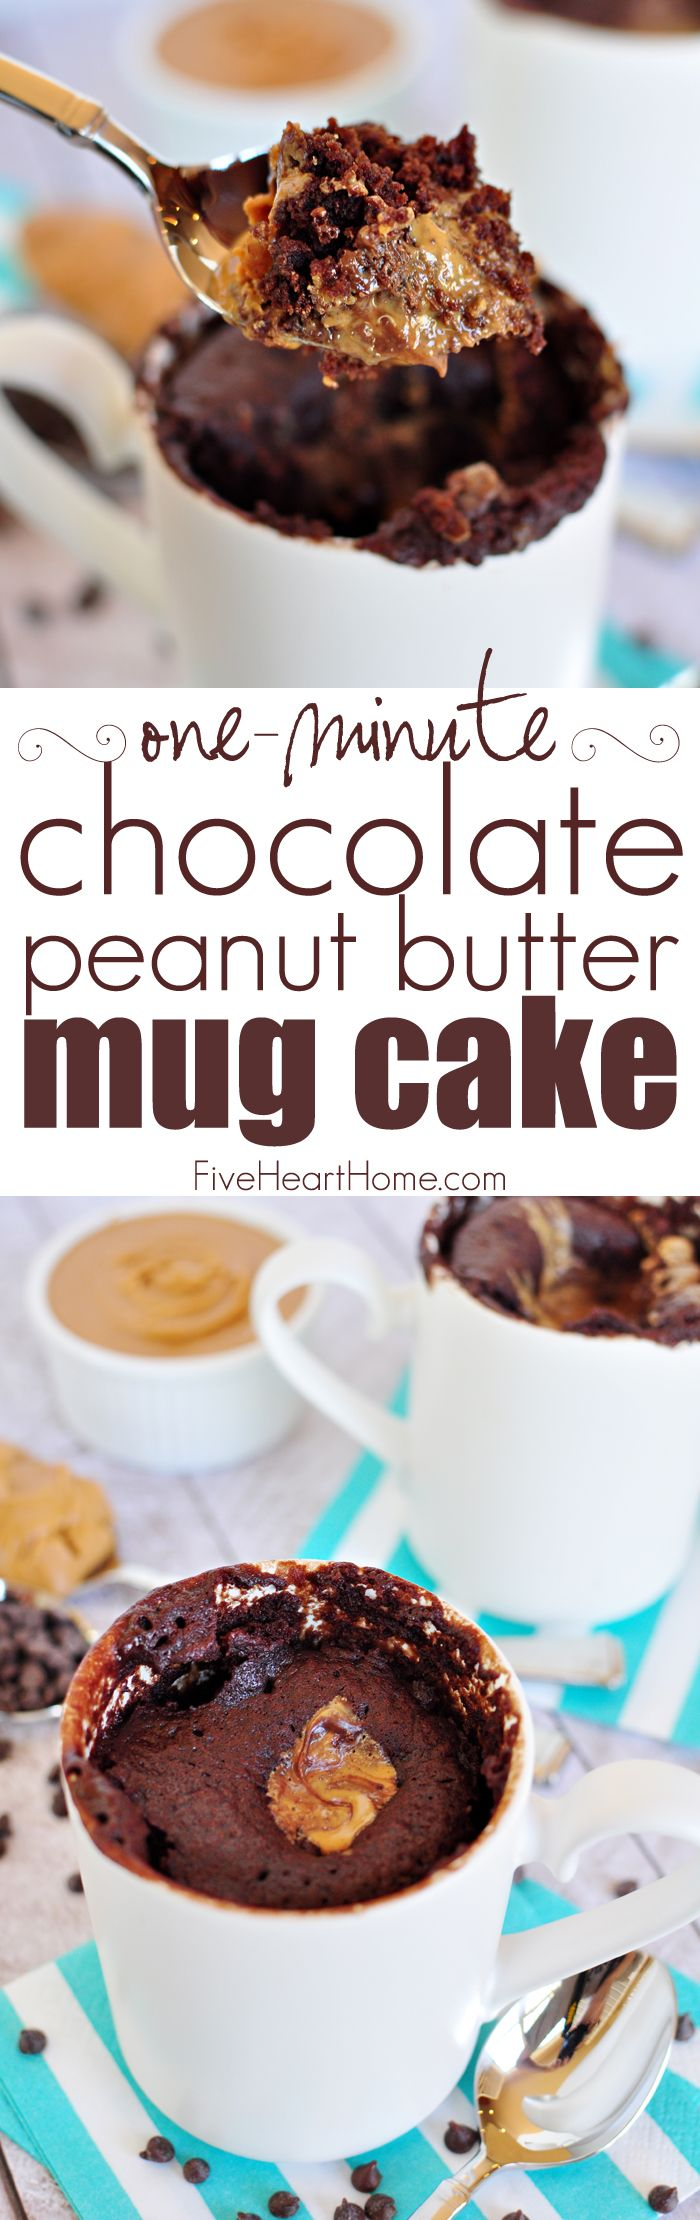 One-Minute Chocolate Peanut Butter Mug Cake ~ moist chocolate cake with a molten peanut butter center bakes up in a microwaved mug in just one minute!   FiveHeartHome.com